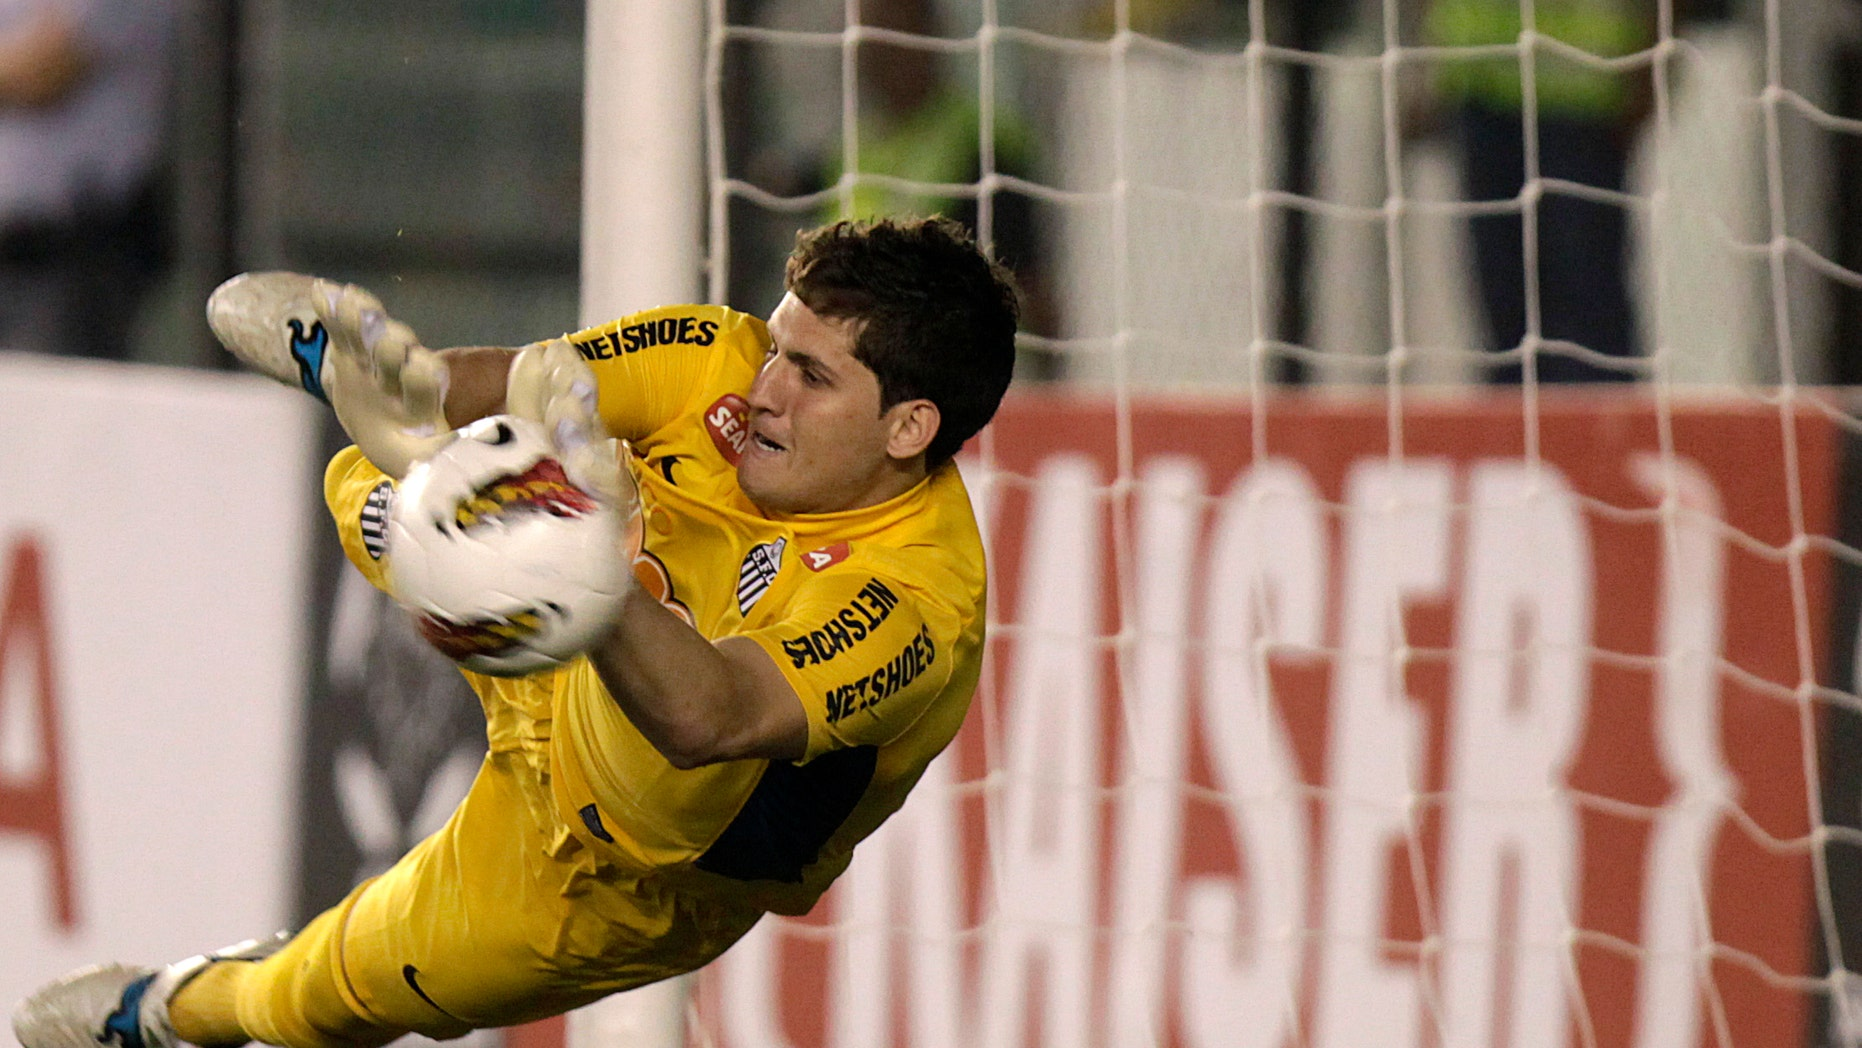 May 24, 2012: In this file photo Brazil's Santos' goalkeeper Rafael stops a shot in the penalty shootout of a Copa Libertadores soccer match in Santos, Brazil.